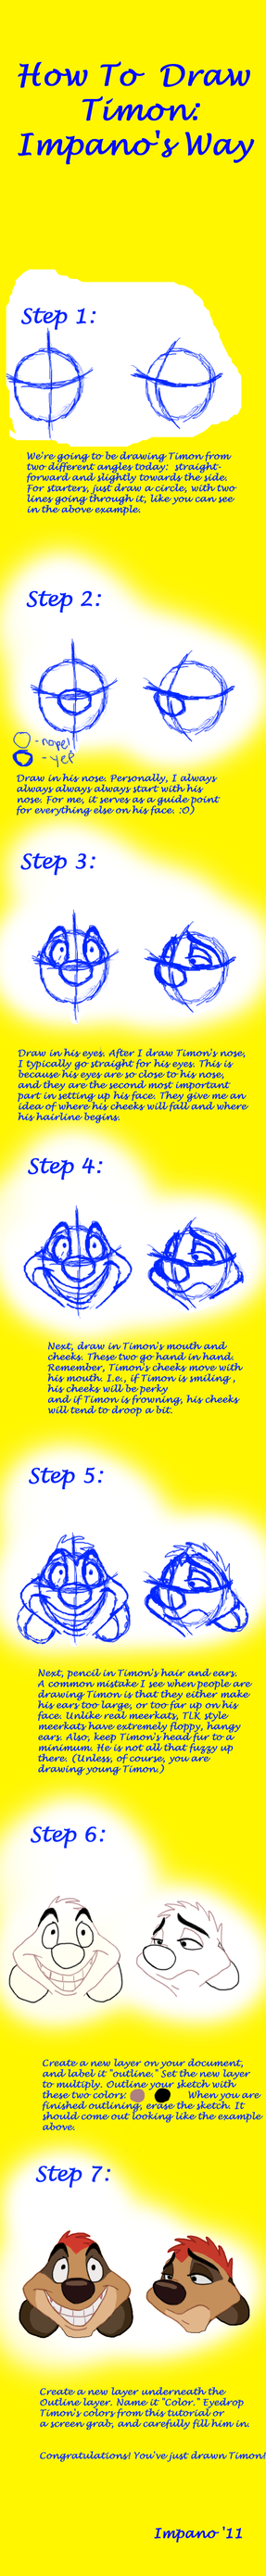 How To Draw Timon: A Tutorial by Impano